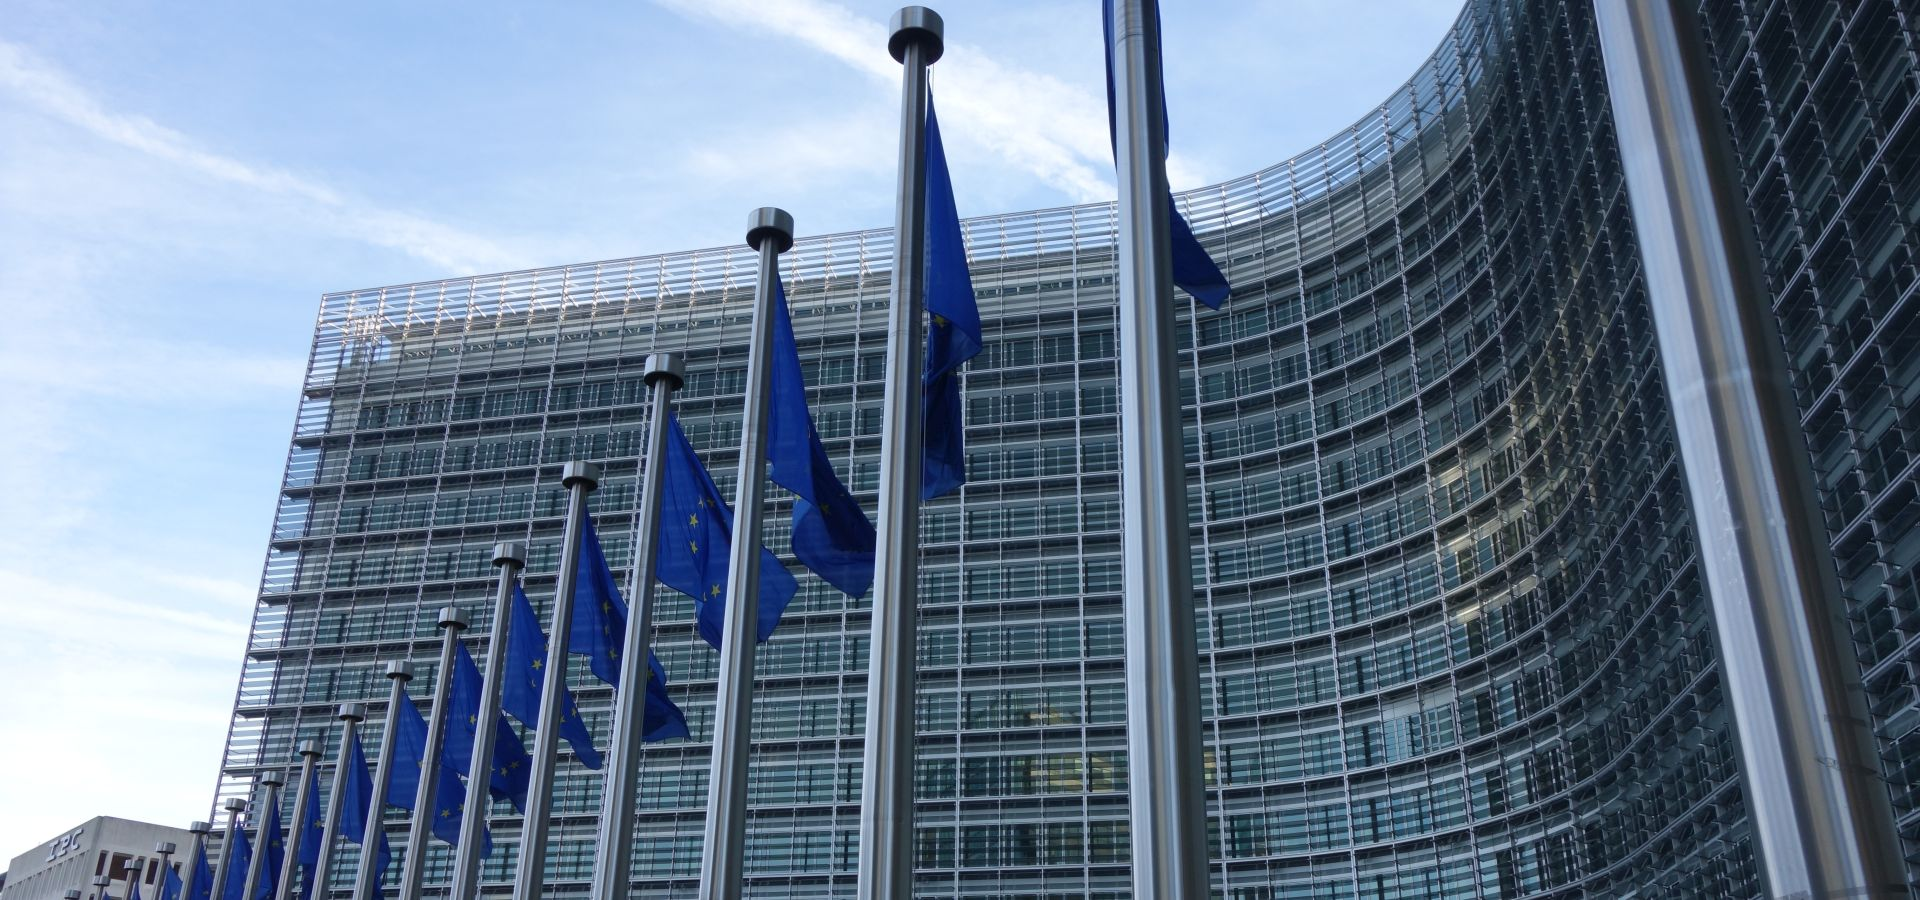 The Berlaymont building in Brussels with flags of the European Union in front of it.